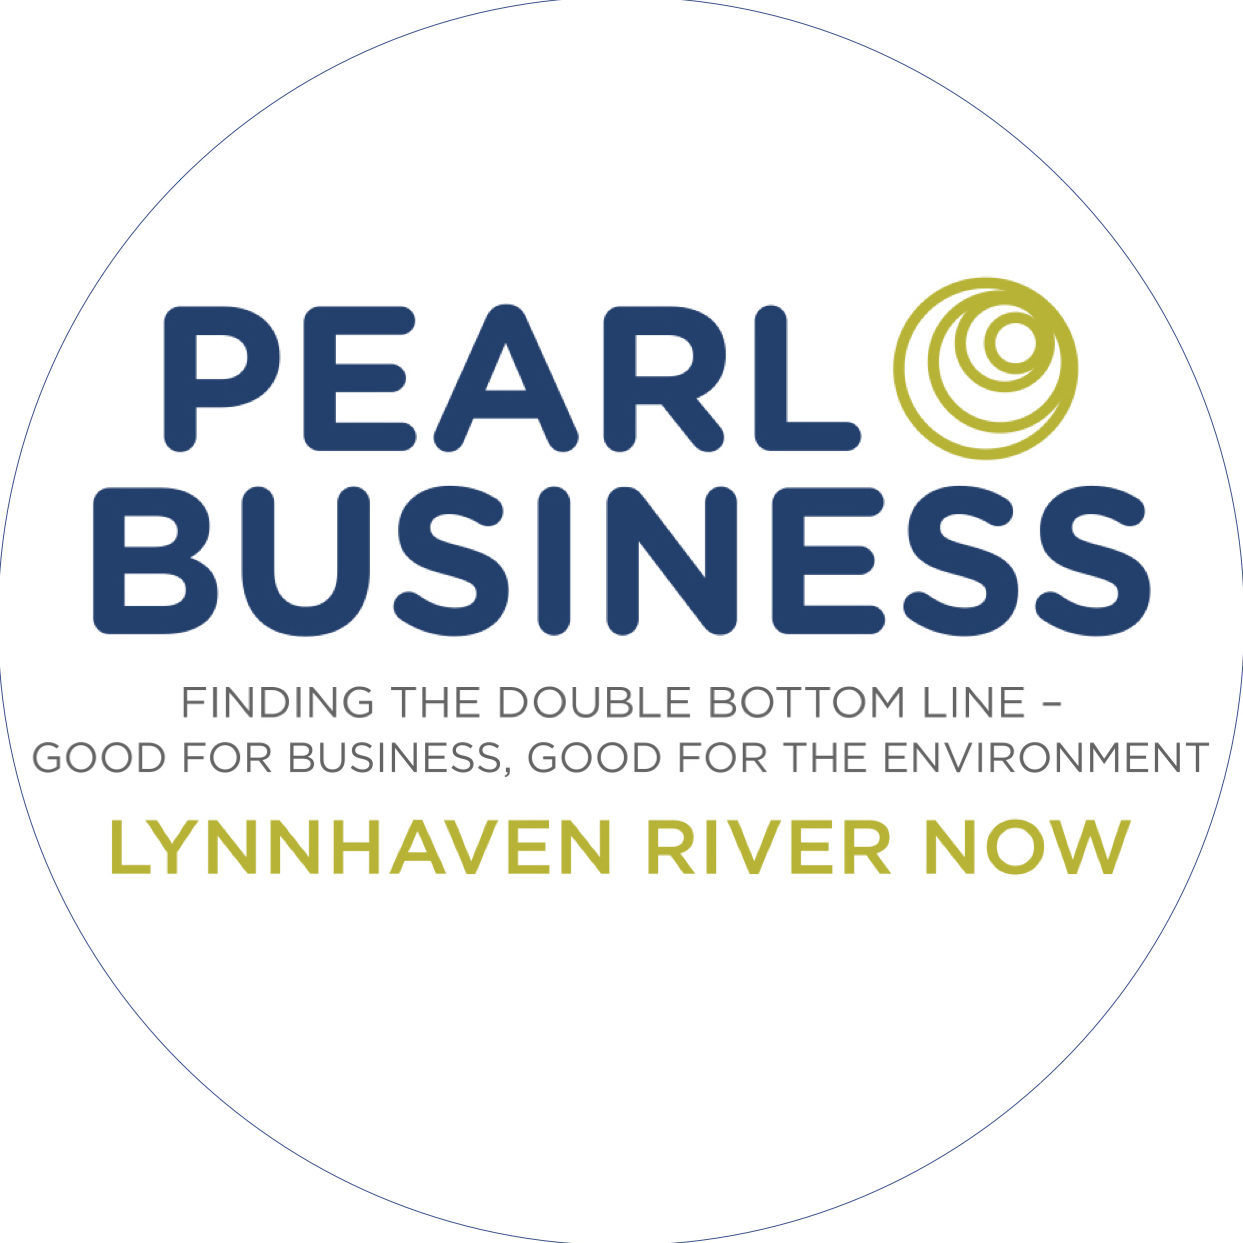 Pearl Business Lynnhaven river now logo